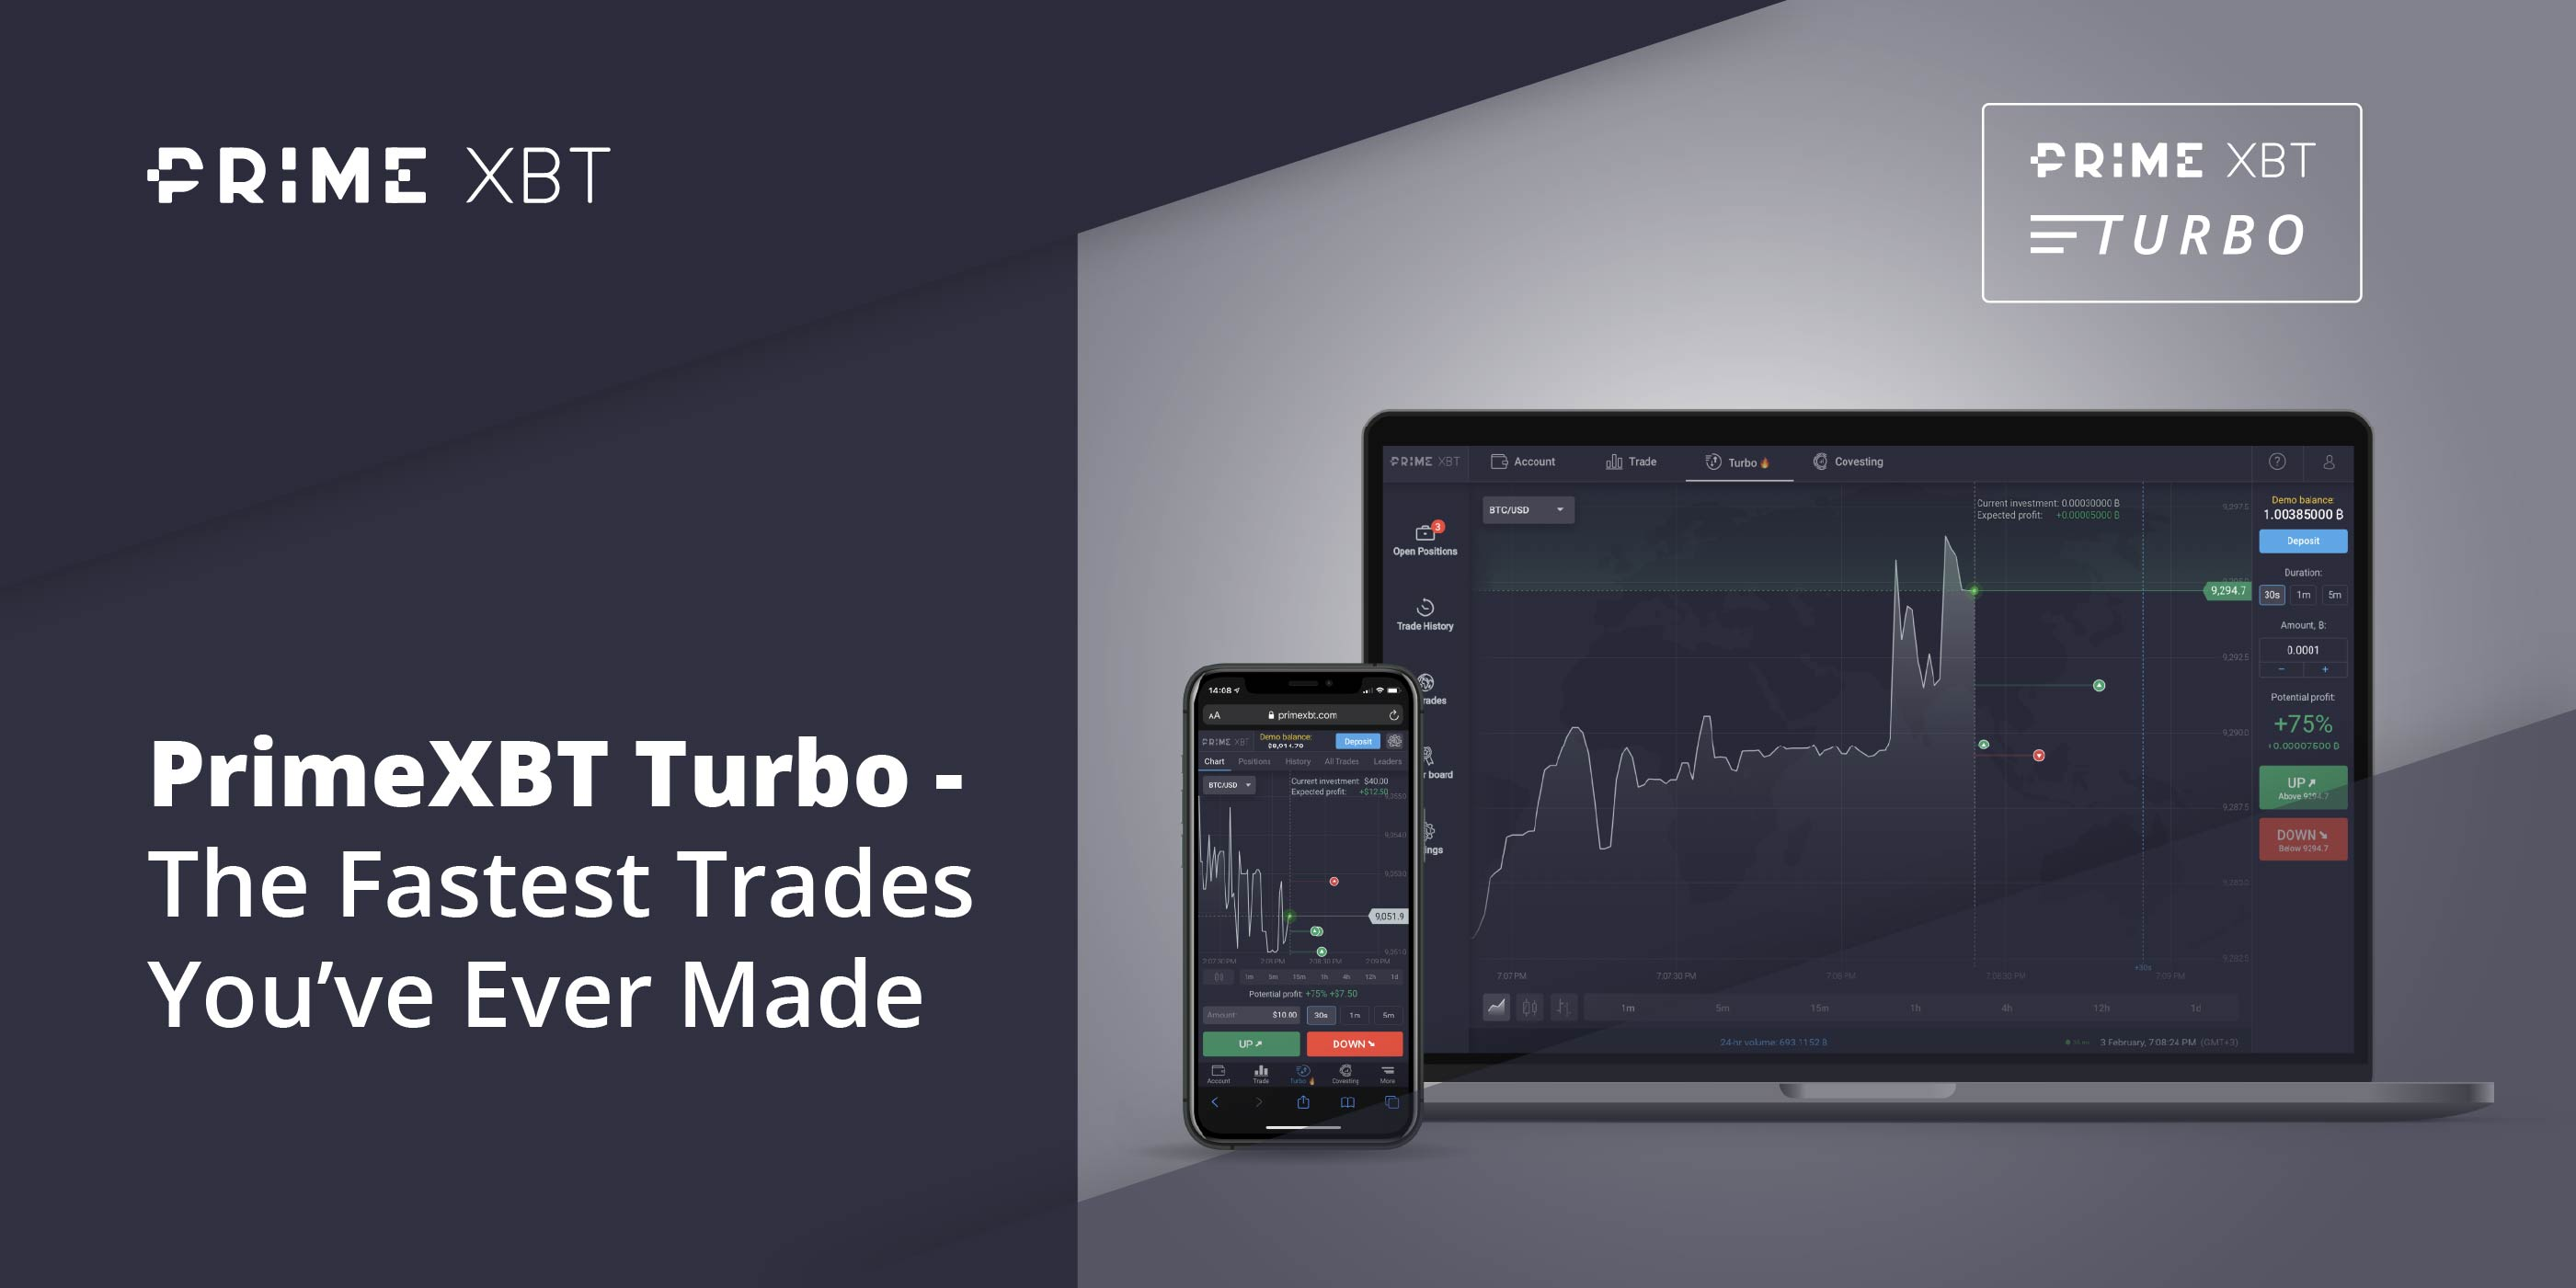 PrimeXBT Announces Launch of PrimeXBT Turbo Platform